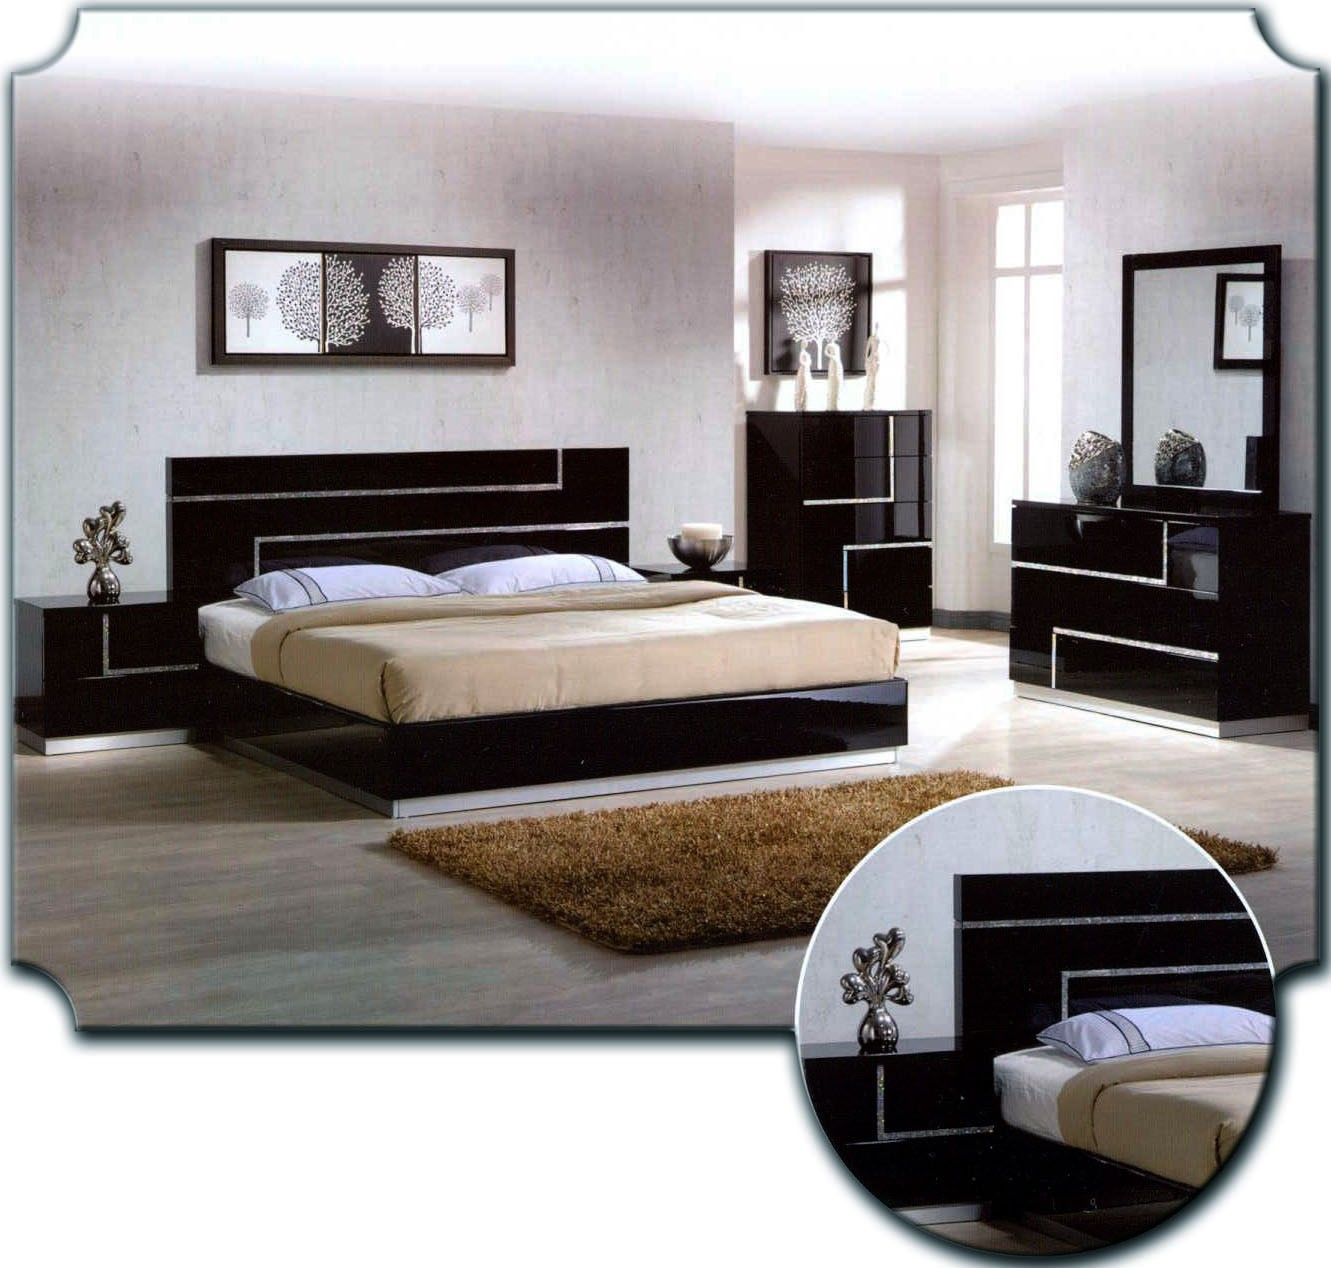 Merveilleux Bedroom Design Furniture Sets Photo   3